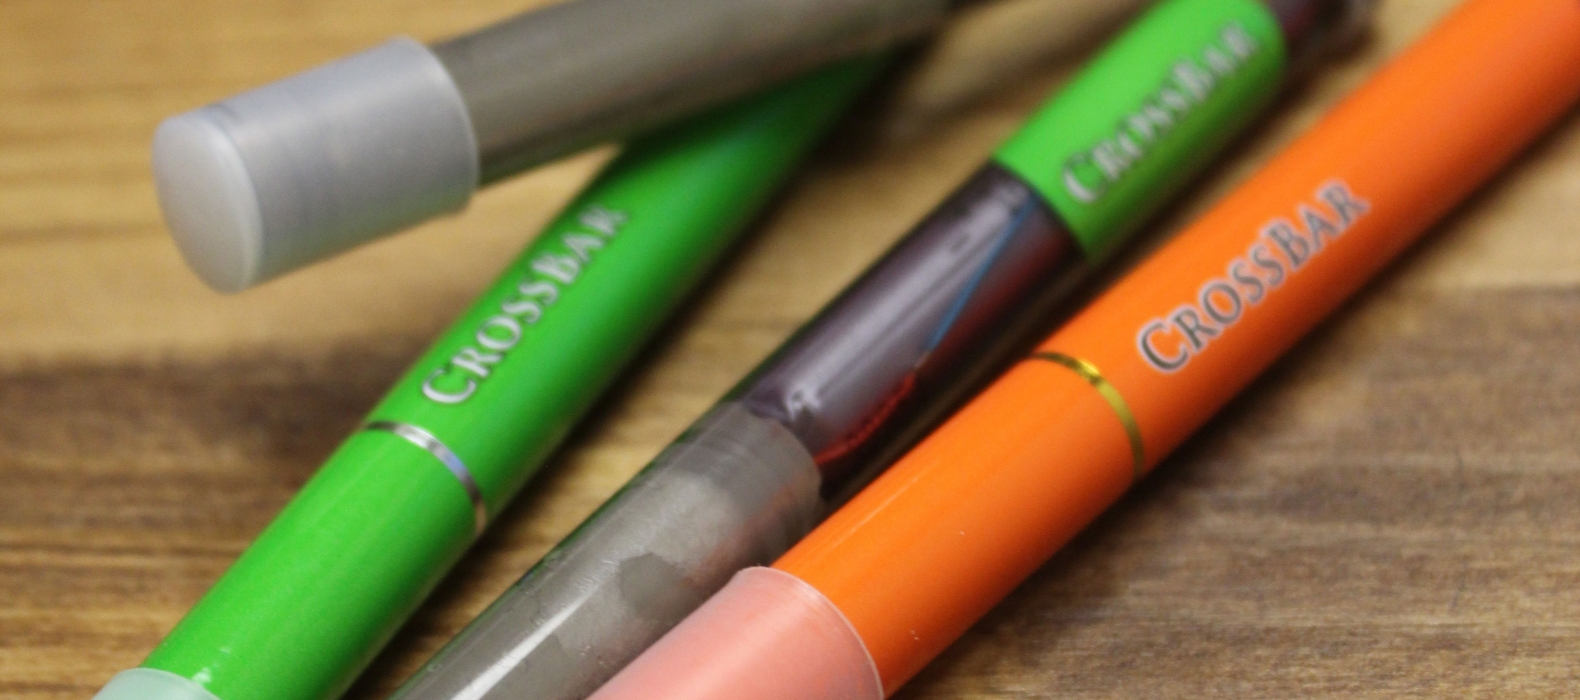 CrossBar Electronic Cigarettes: A New Brand